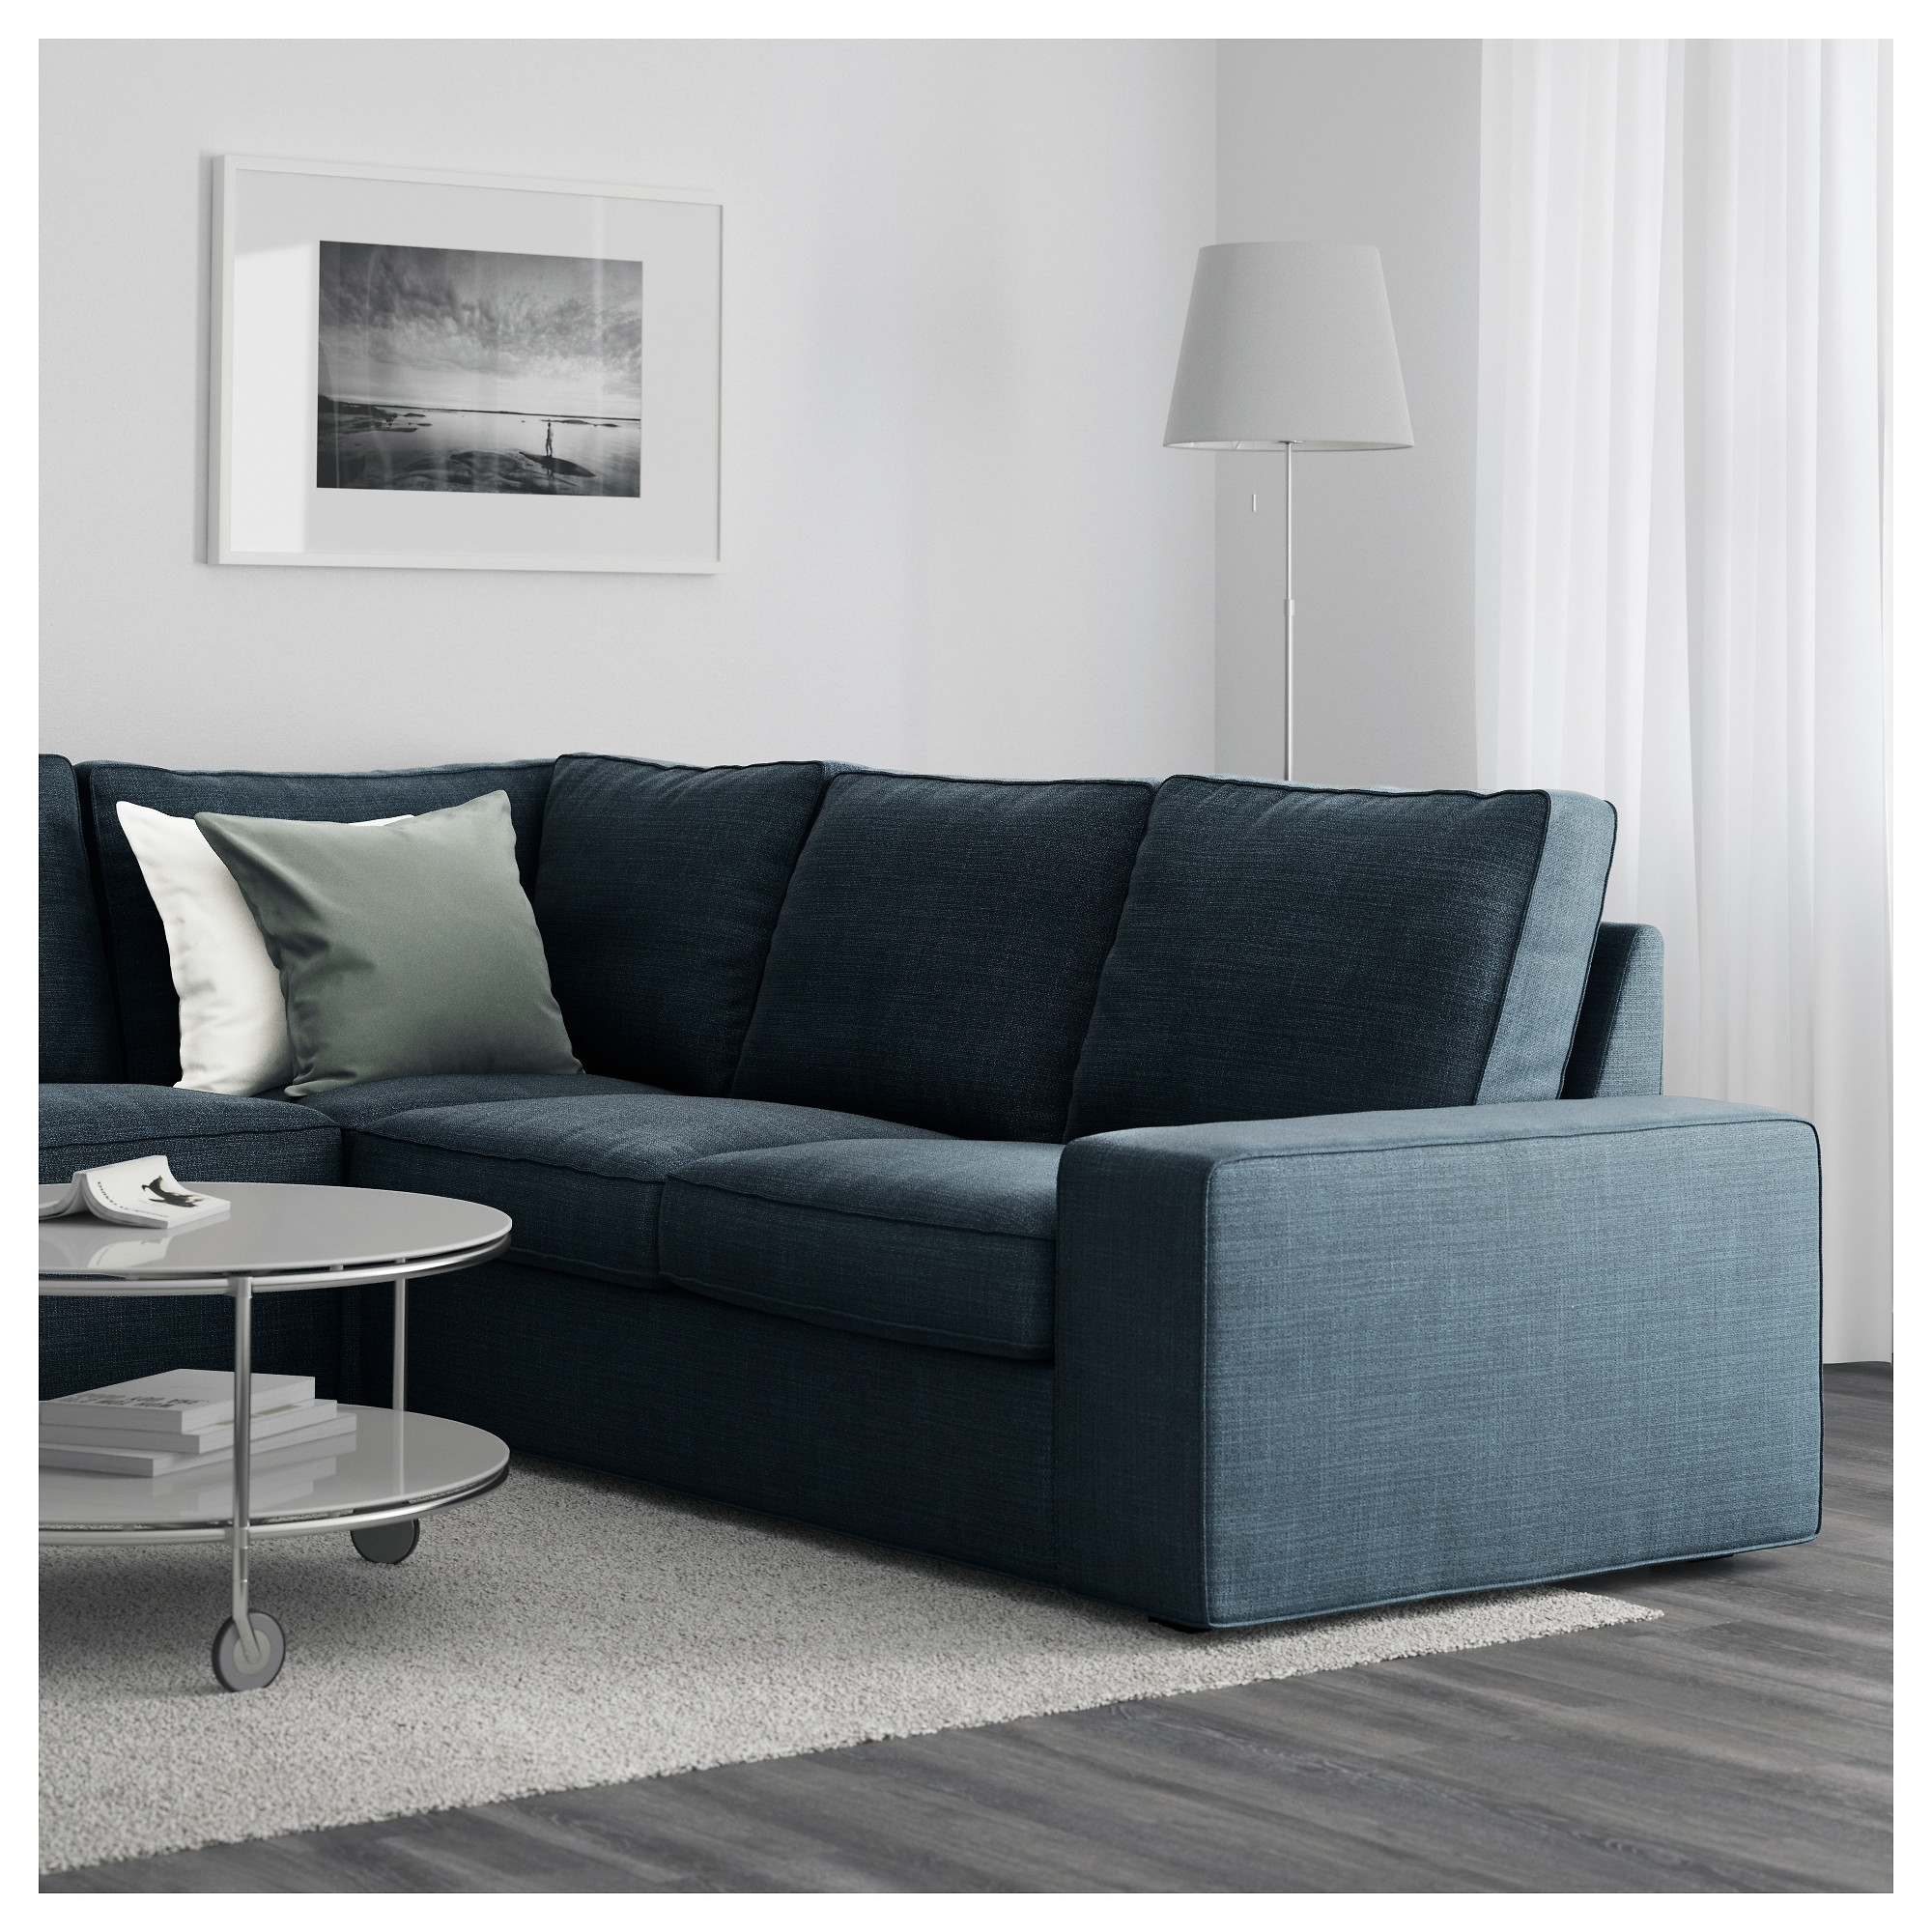 Widely Used Kivik Sectional, 5 Seat Corner – Hillared Dark Blue – Ikea Regarding Ikea Kivik Chaises (View 15 of 15)